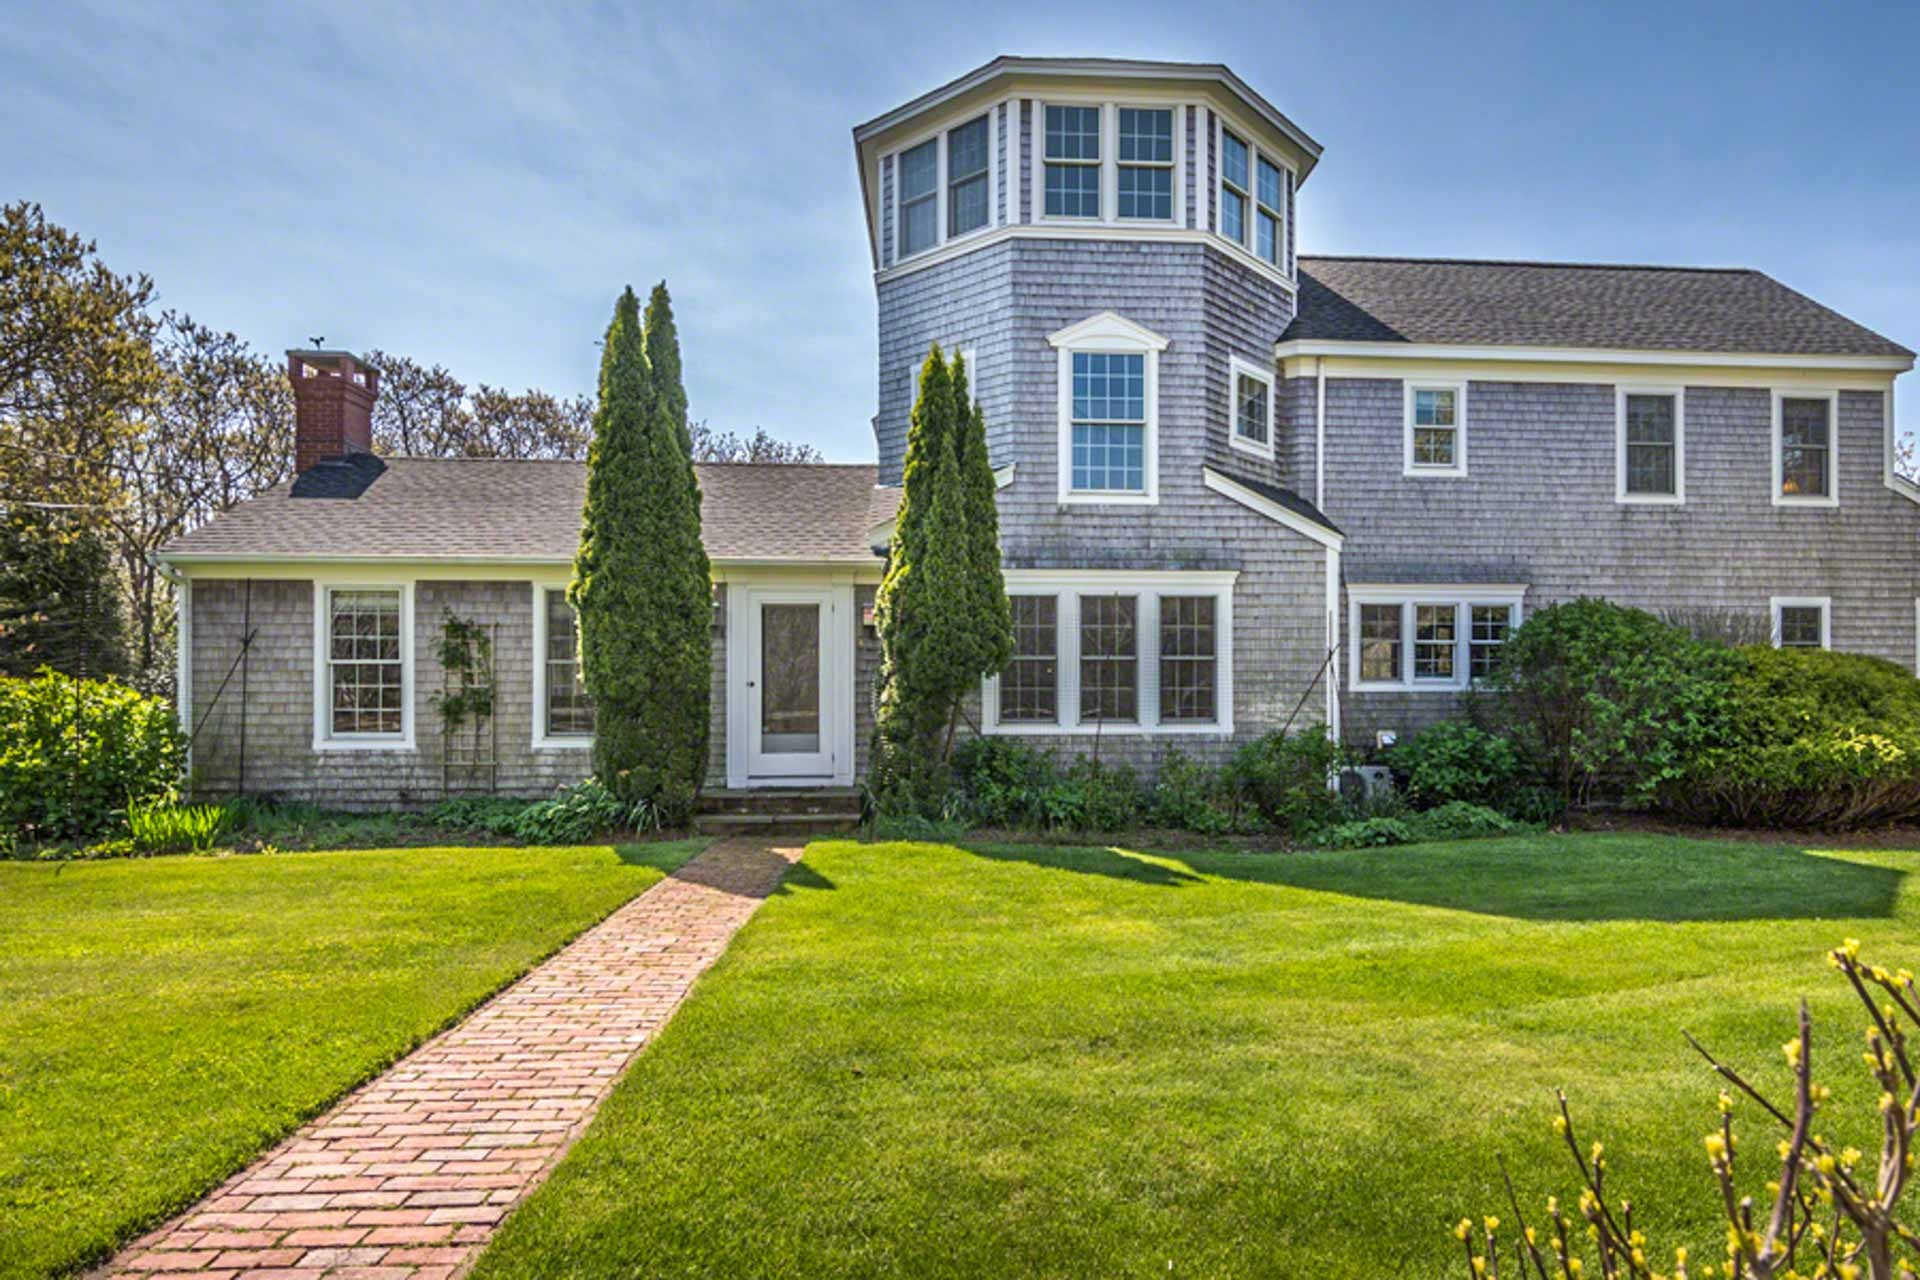 4 Plover Lane, Edgartown Unit: Newly Listed